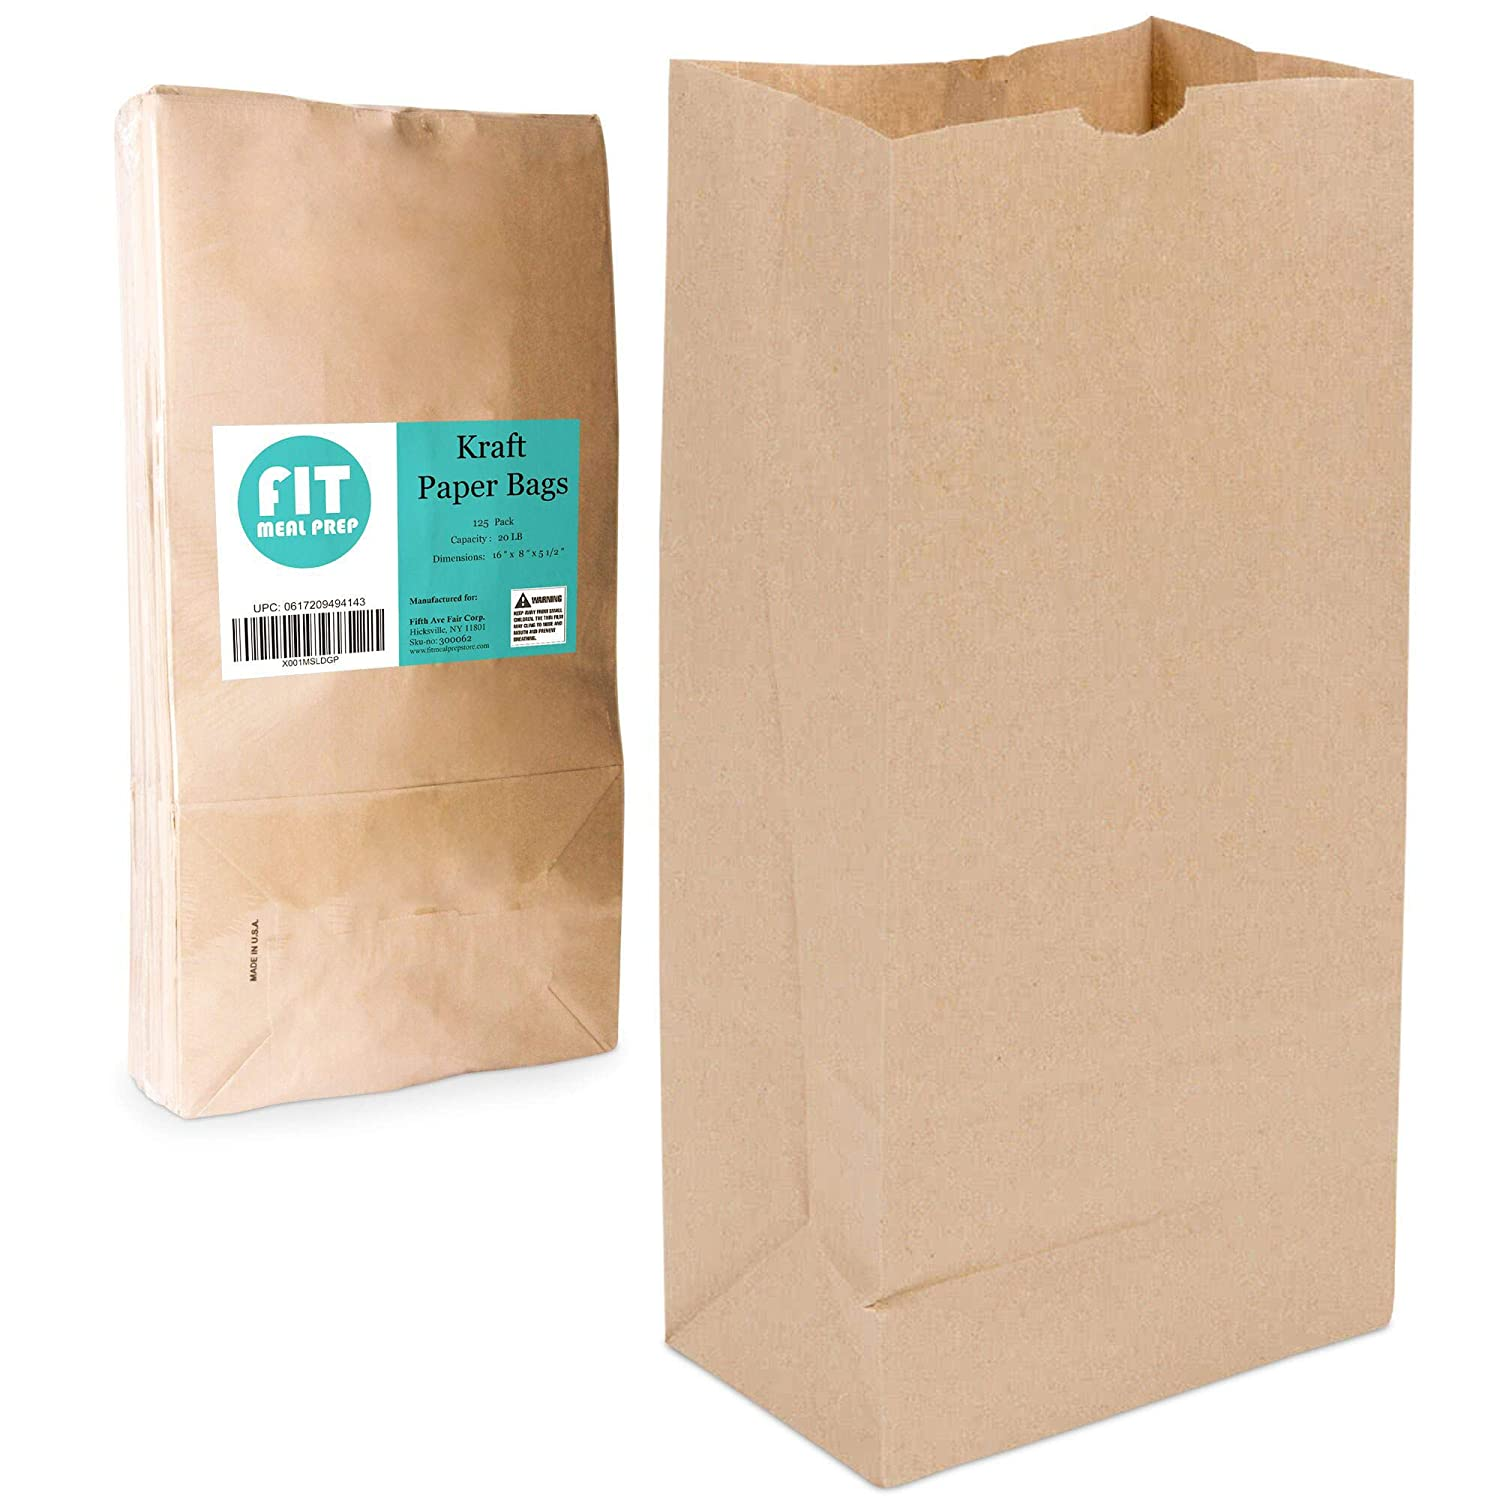 [125 Pack] Heavy Duty Kraft Paper Bags 16 x 8 x 5.5 20 LB Grocery Lunch Retail Shopping Durable Natural Brown Barrel Sack